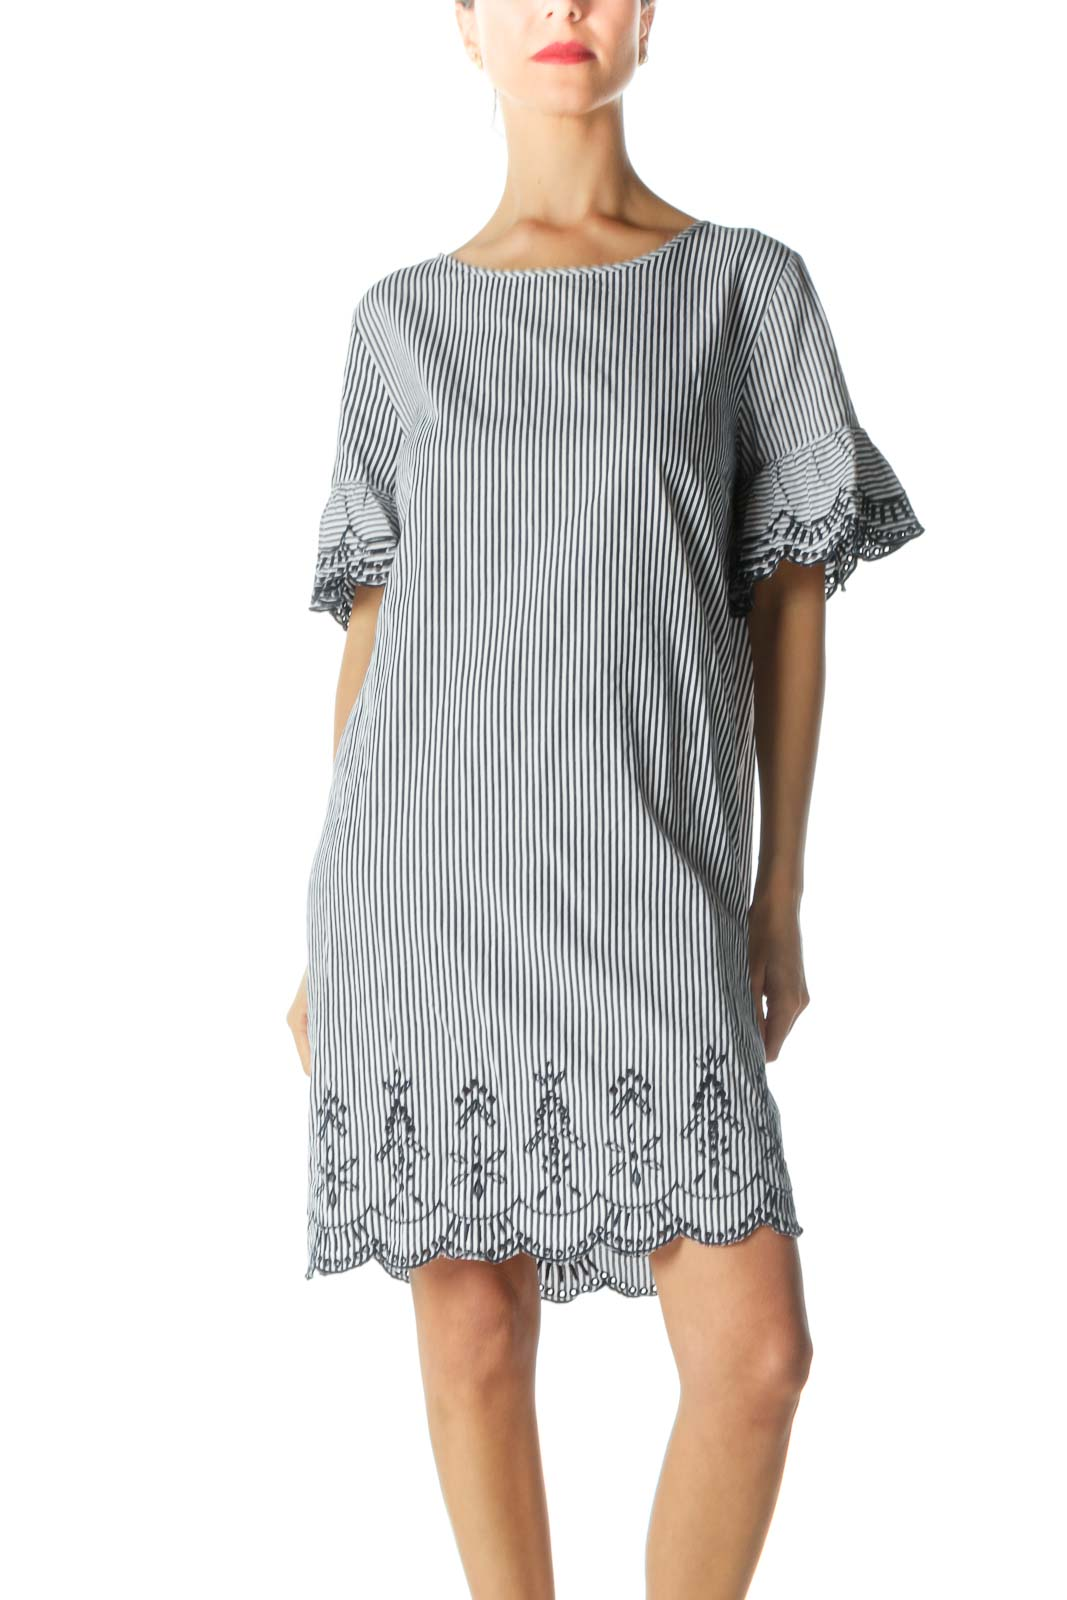 Blue and White Striped Shift Dress with Embroidered Bell-Sleeves